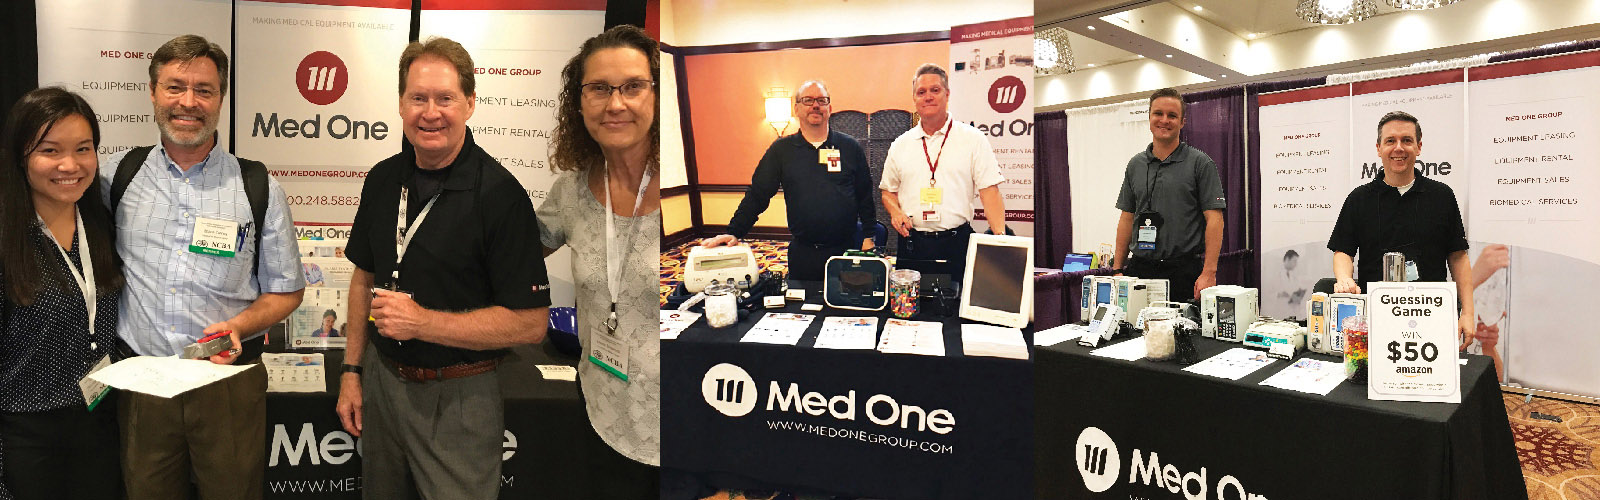 Med One at Various Tradeshows